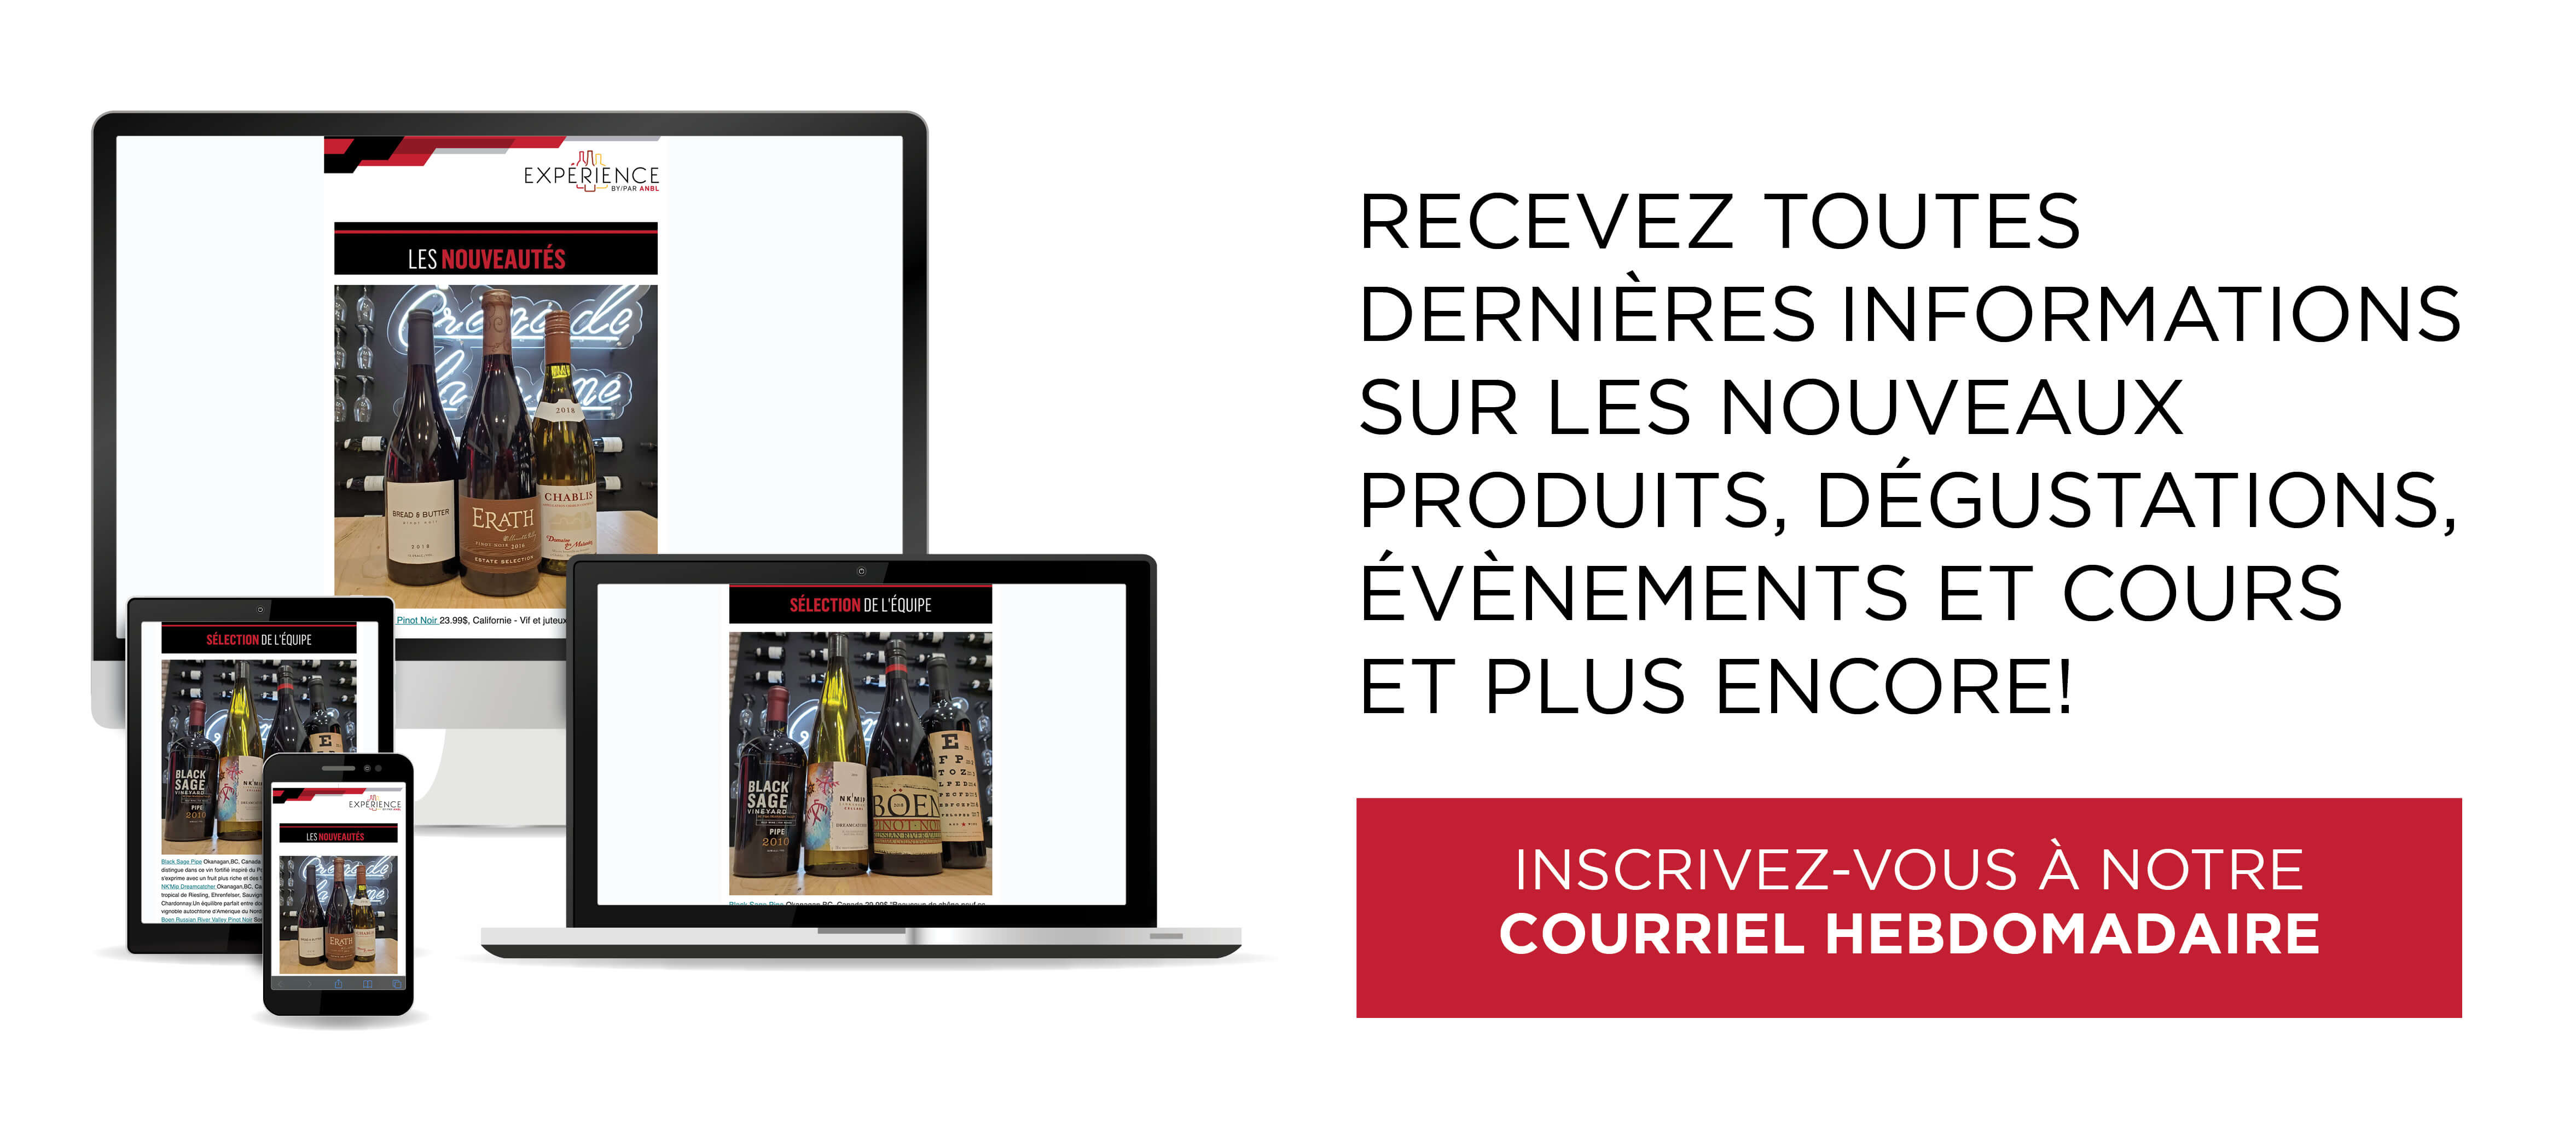 experience-boutique-newsletter-footer-fr